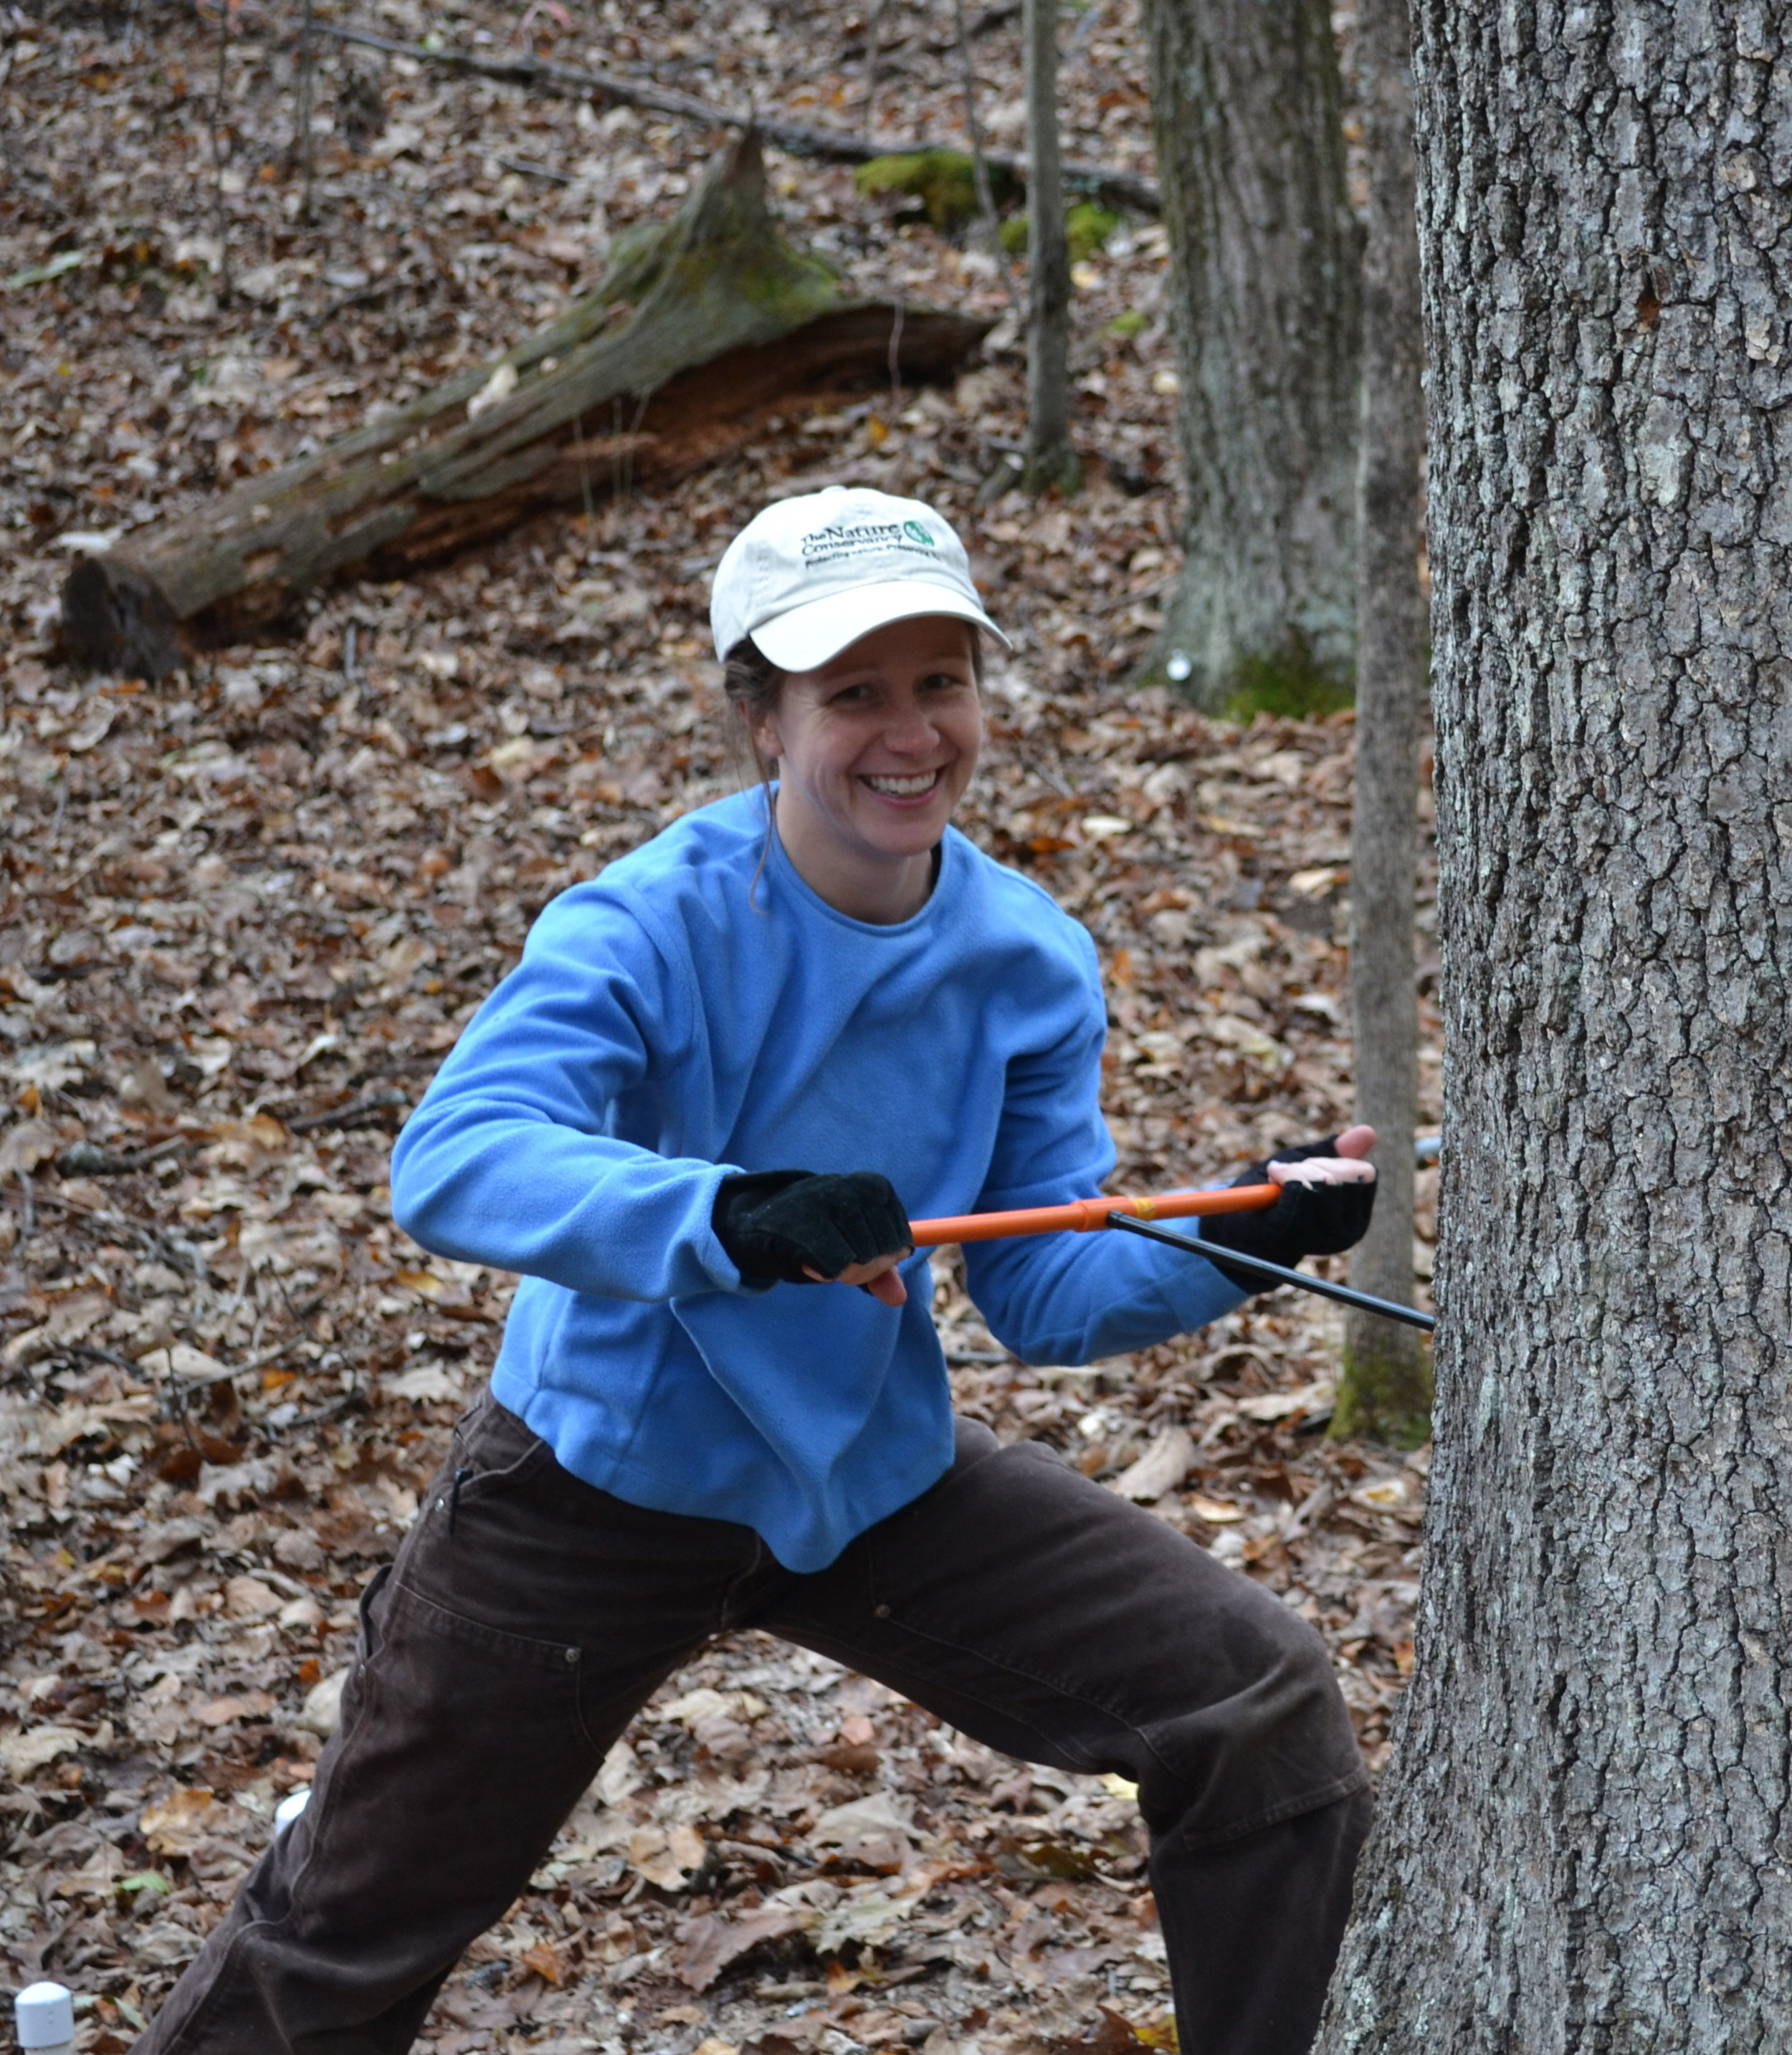 About - Find out about Christy and others involved with the Forest Ecology lab at The Morton Arboretum.